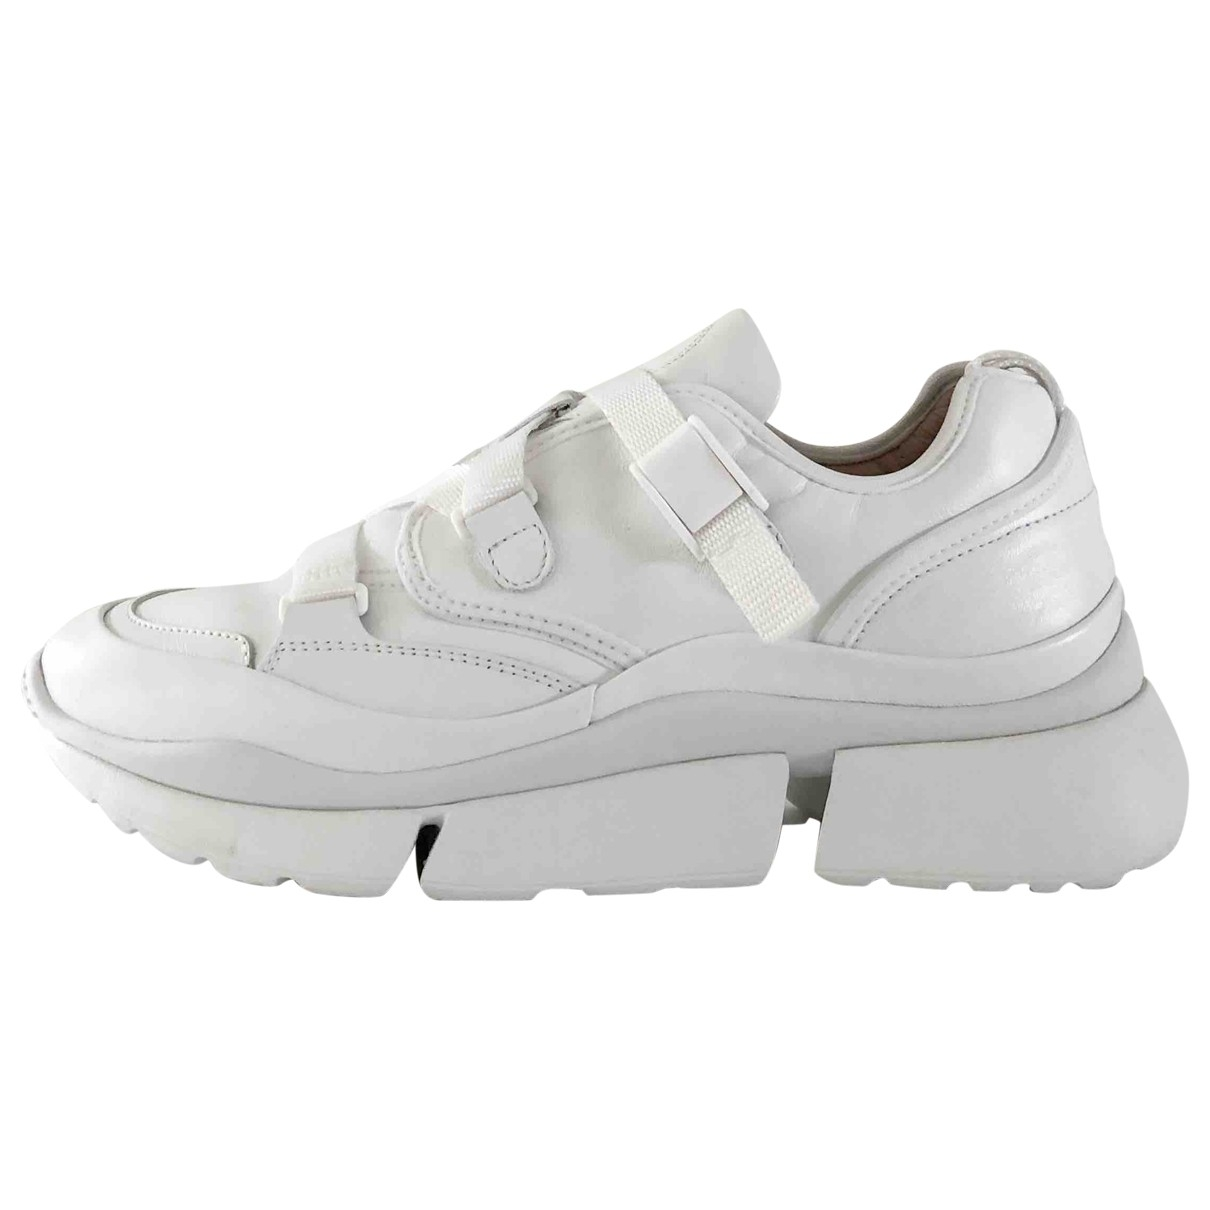 Chloé Sonnie White Leather Trainers for Women 41 EU